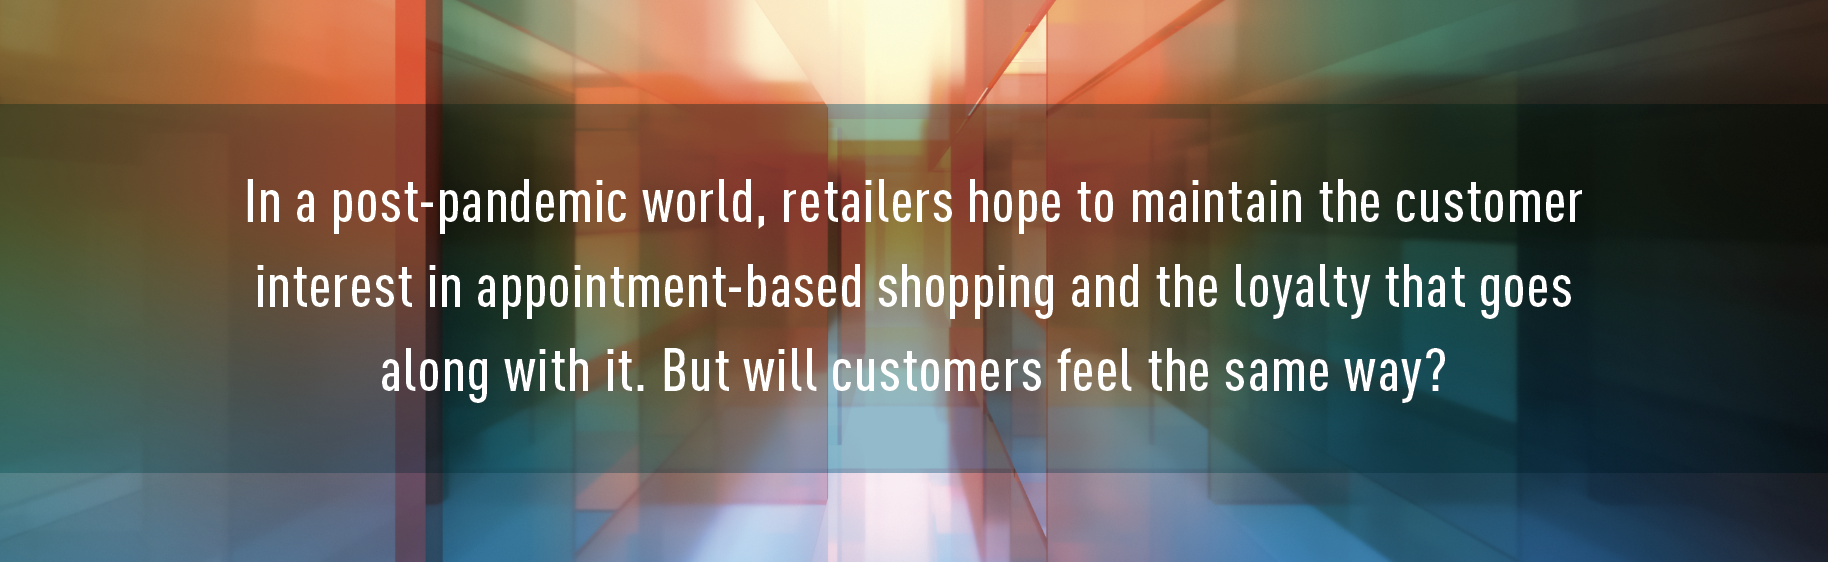 CallOut: In a post-pandemic world, retailers hope to maintain the customer interest in appointment-based shopping and the loyalty that goes along with it. But will customers feel the same way?